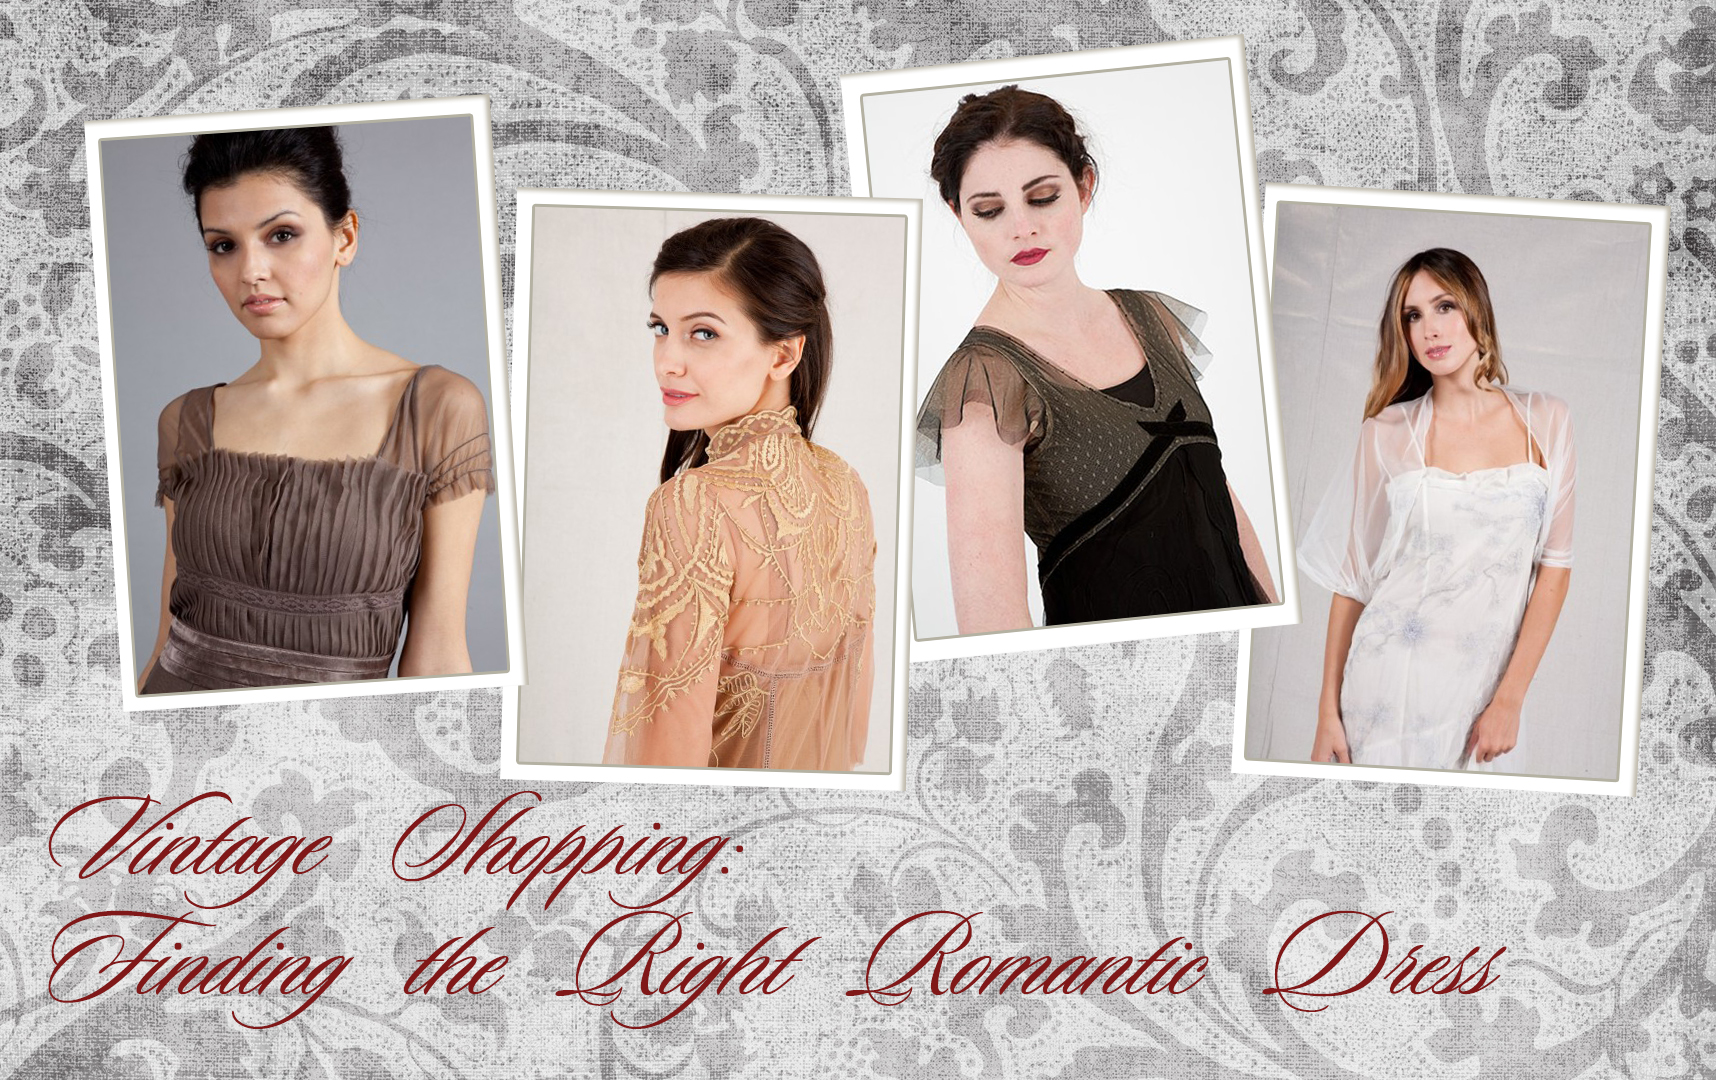 Vintage Shopping: Finding the Right Romantic Dress